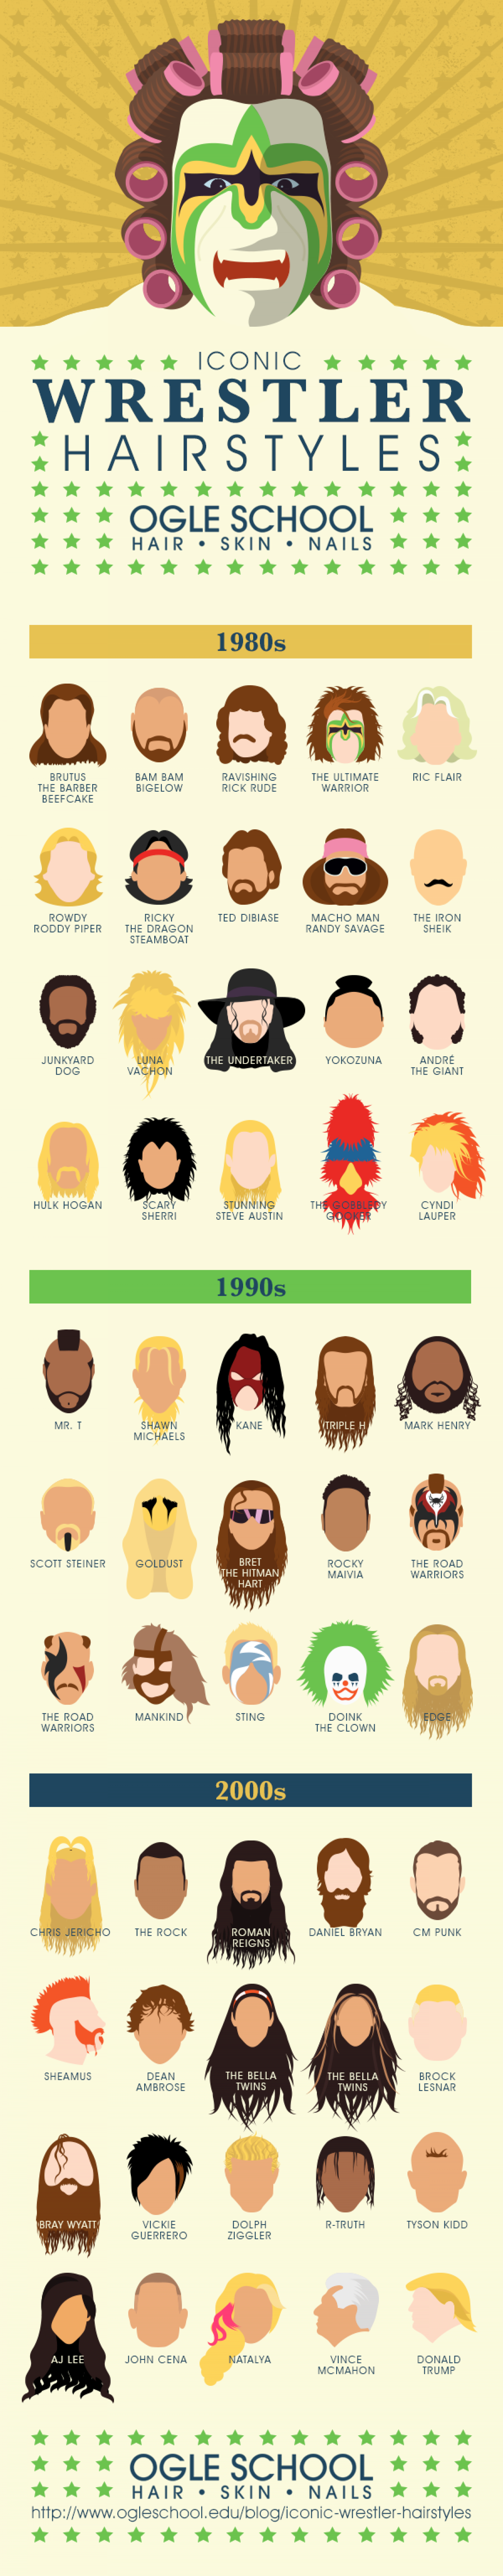 Iconic Wrestler's Hairstyles Infographic